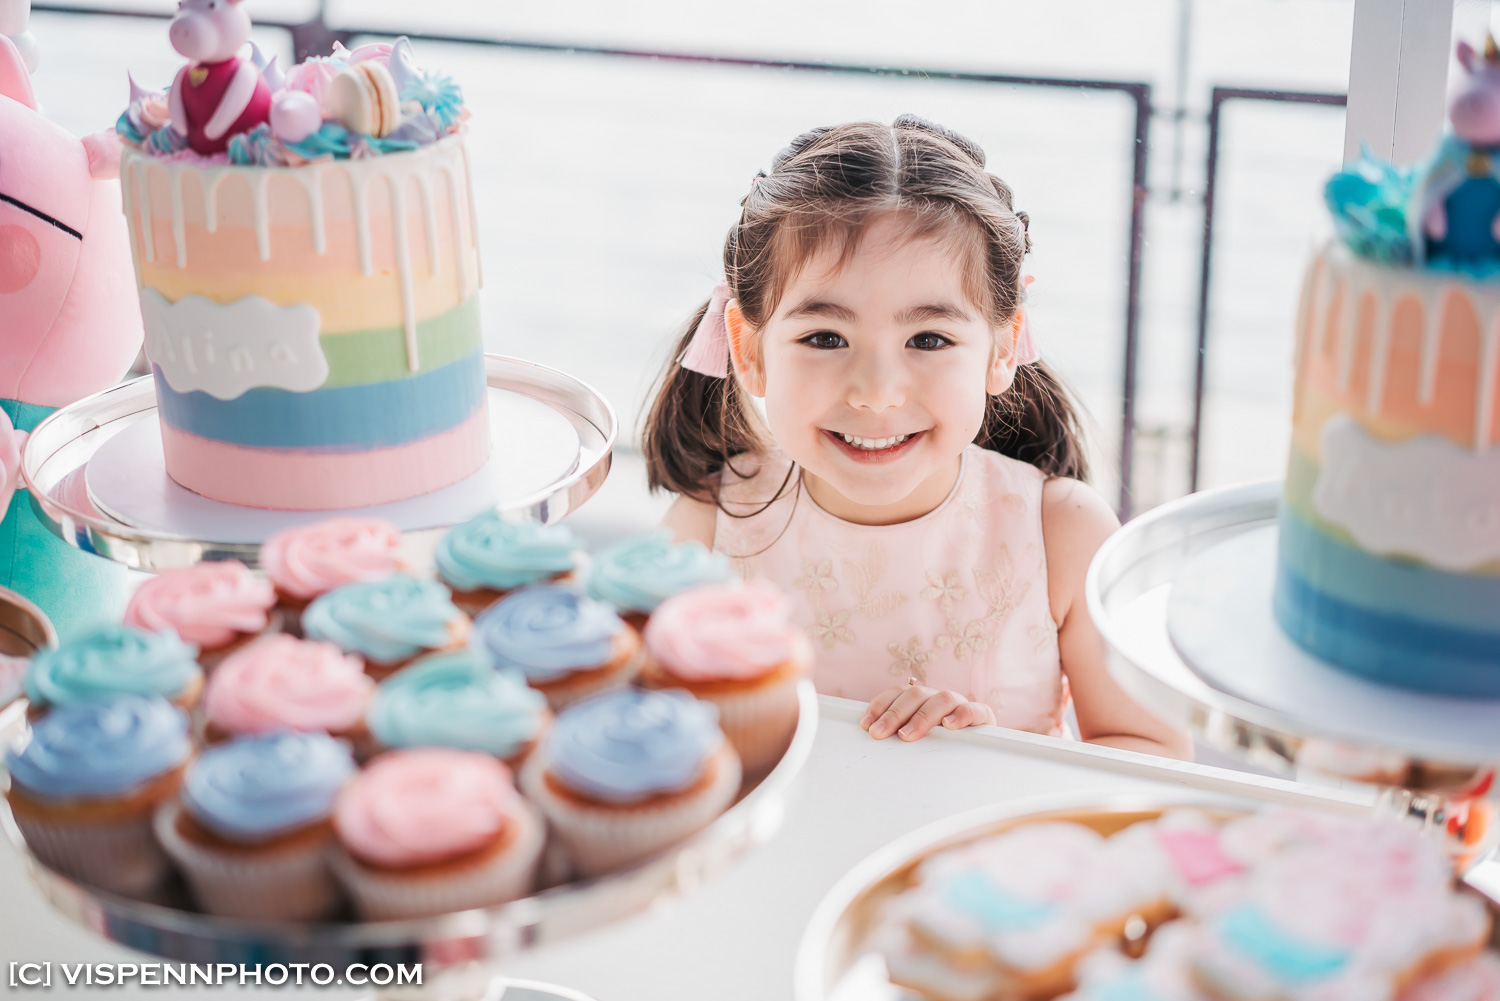 Melbourne Baby Family Birthday Party Photographer 墨尔本 百日宴 满月宴 周岁宴 摄影 VISPENN DSC01475